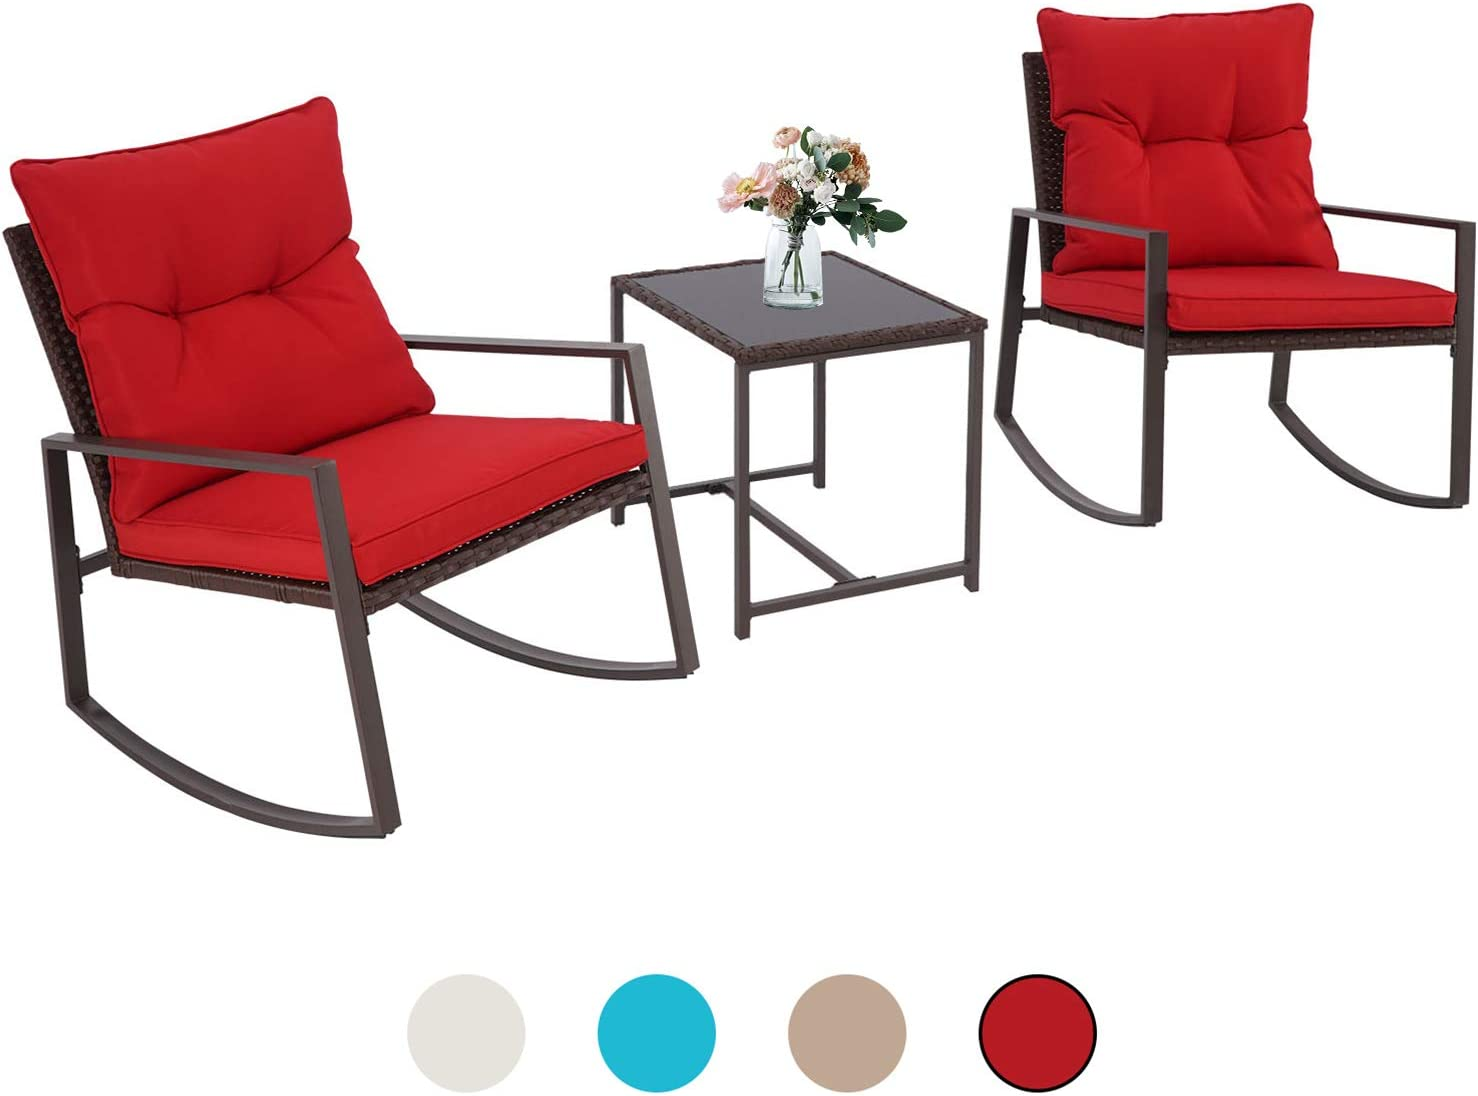 Incbruce Outdoor Indoor 3Pcs Patio Furniture Rocking Chair Set Red All-Weather Brown Wicker Bistro Sets with Cushions and Tempered Glass Coffee Table